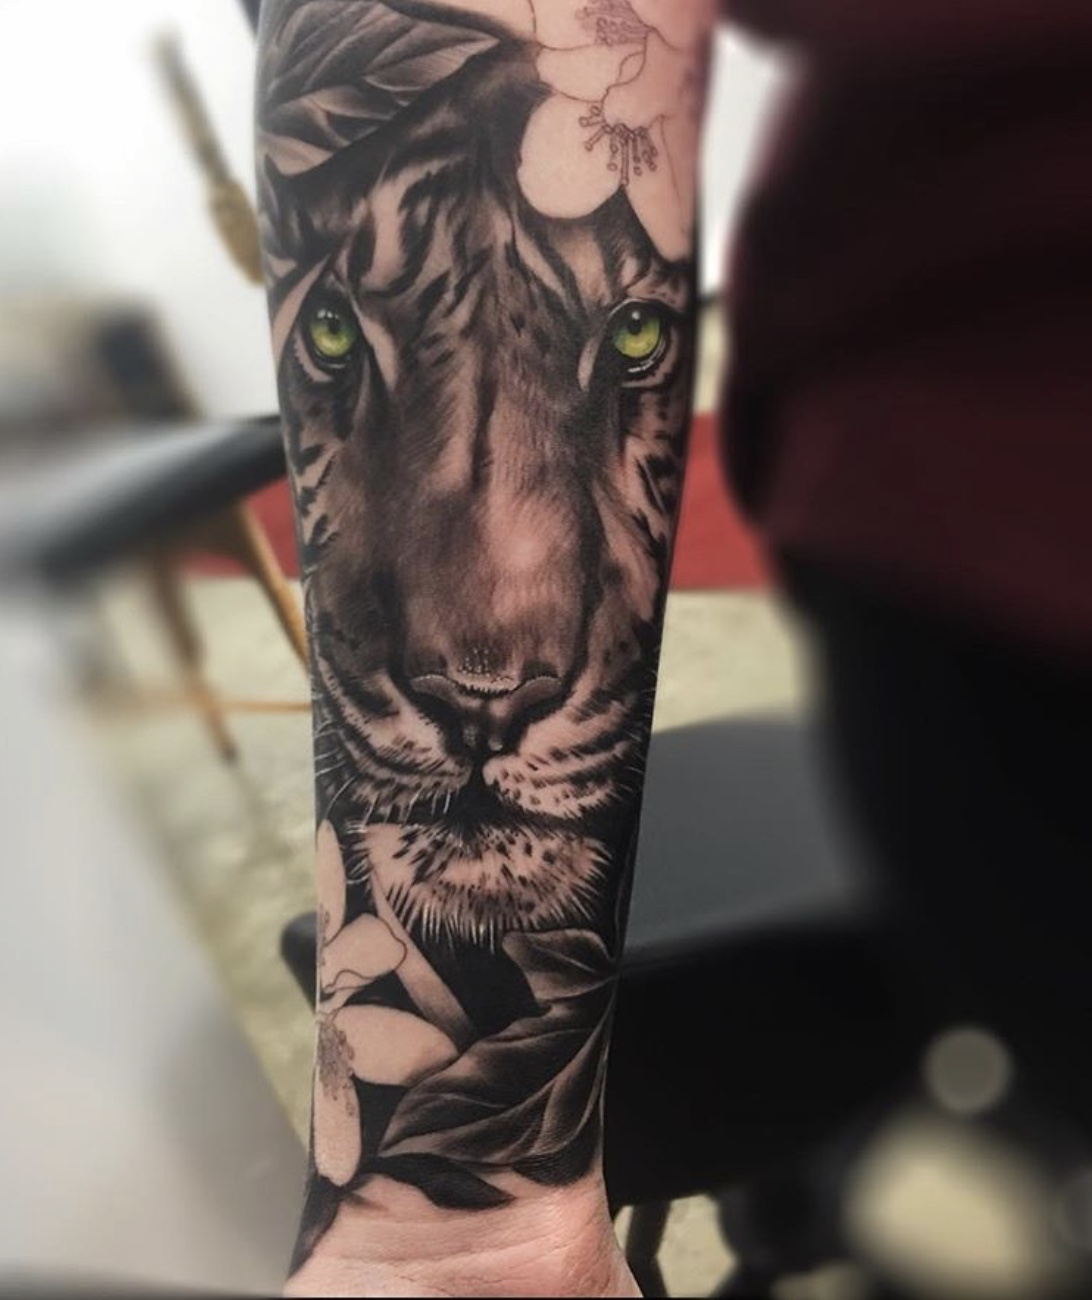 Best Tattoo Shops in Sicamous